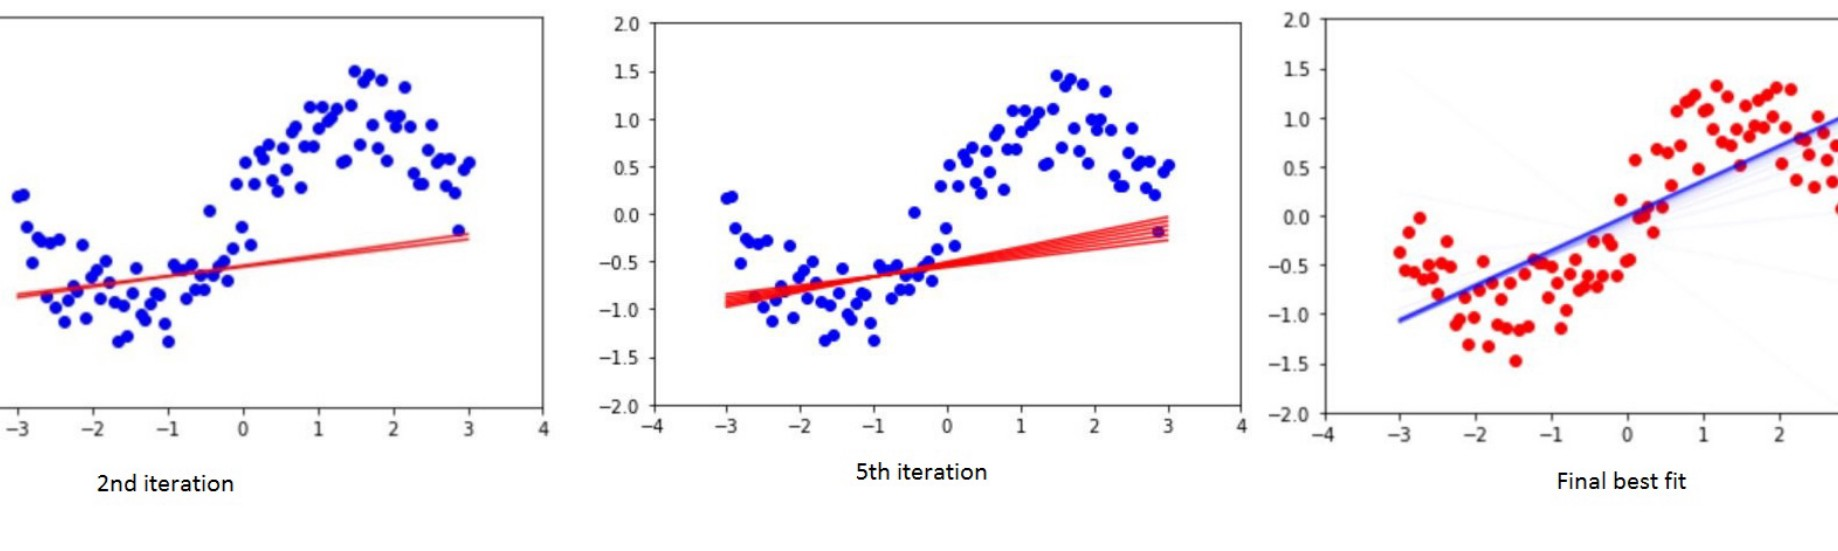 Chapter 1 :Complete Linear Regression with Math  - Deep Math